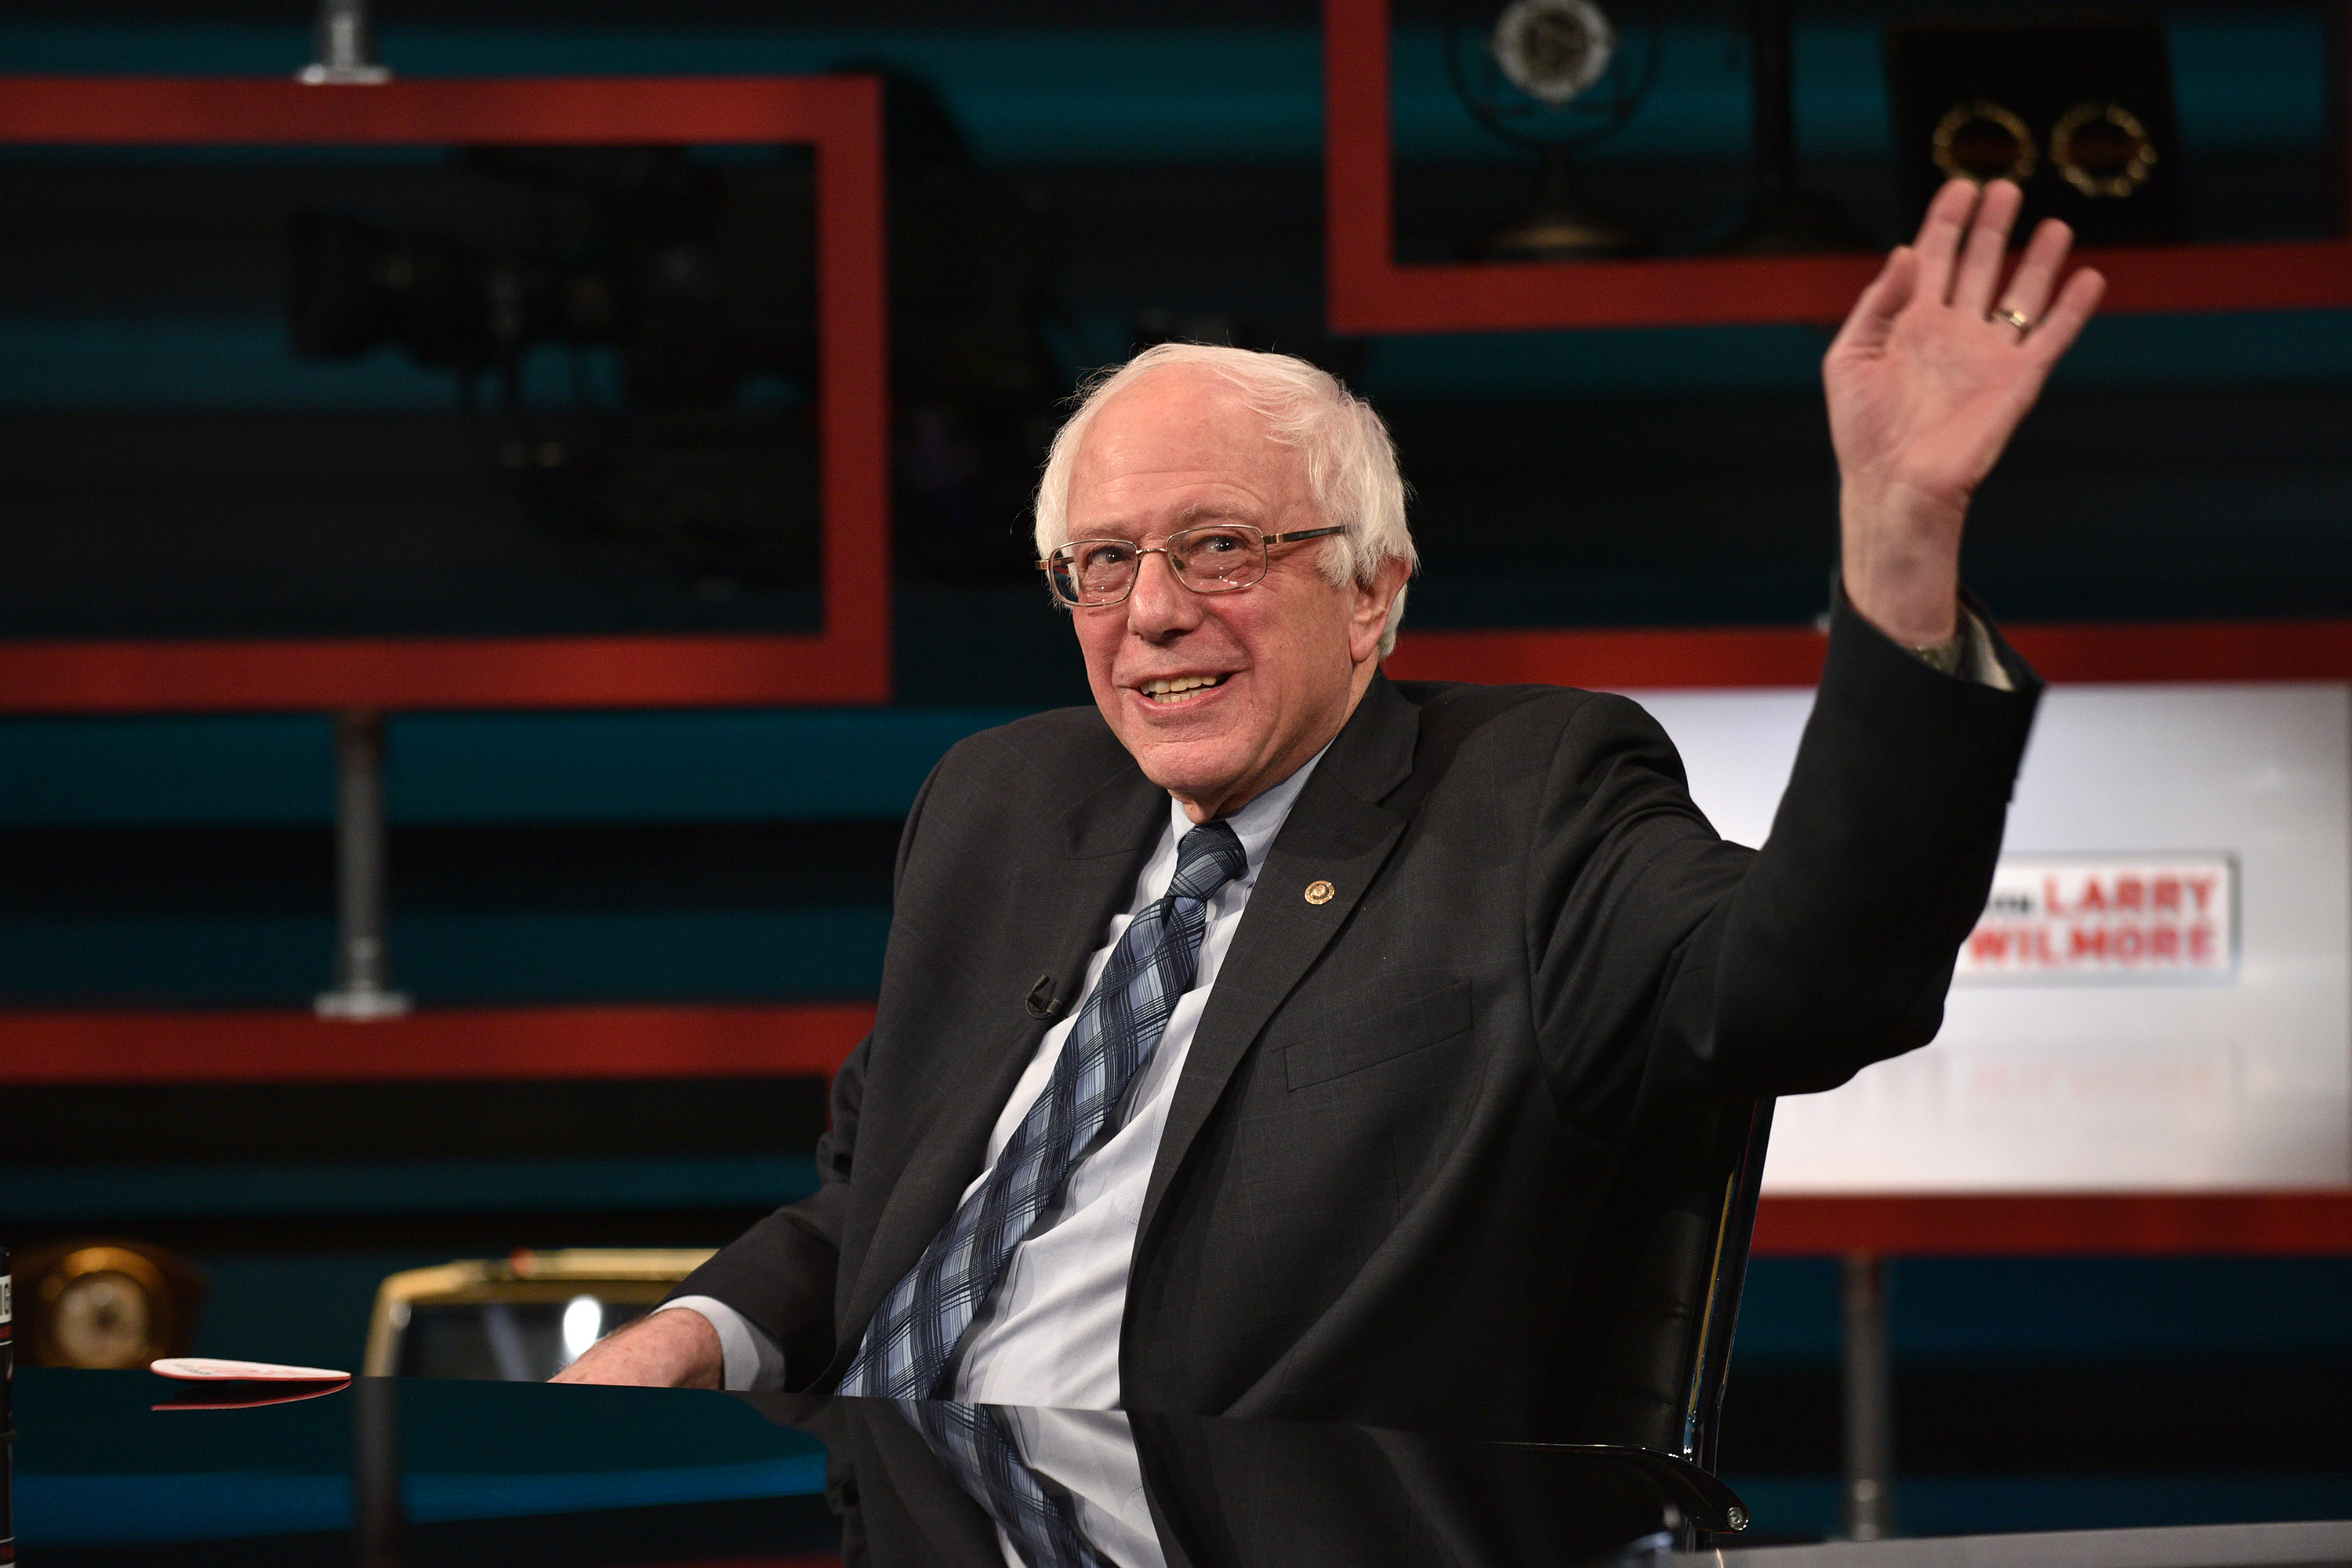 Senator Bernie Sanders on Comedy Central's  The Nightly Show With Larry Wilmore  on Jan. 5, 2016 in New York City.